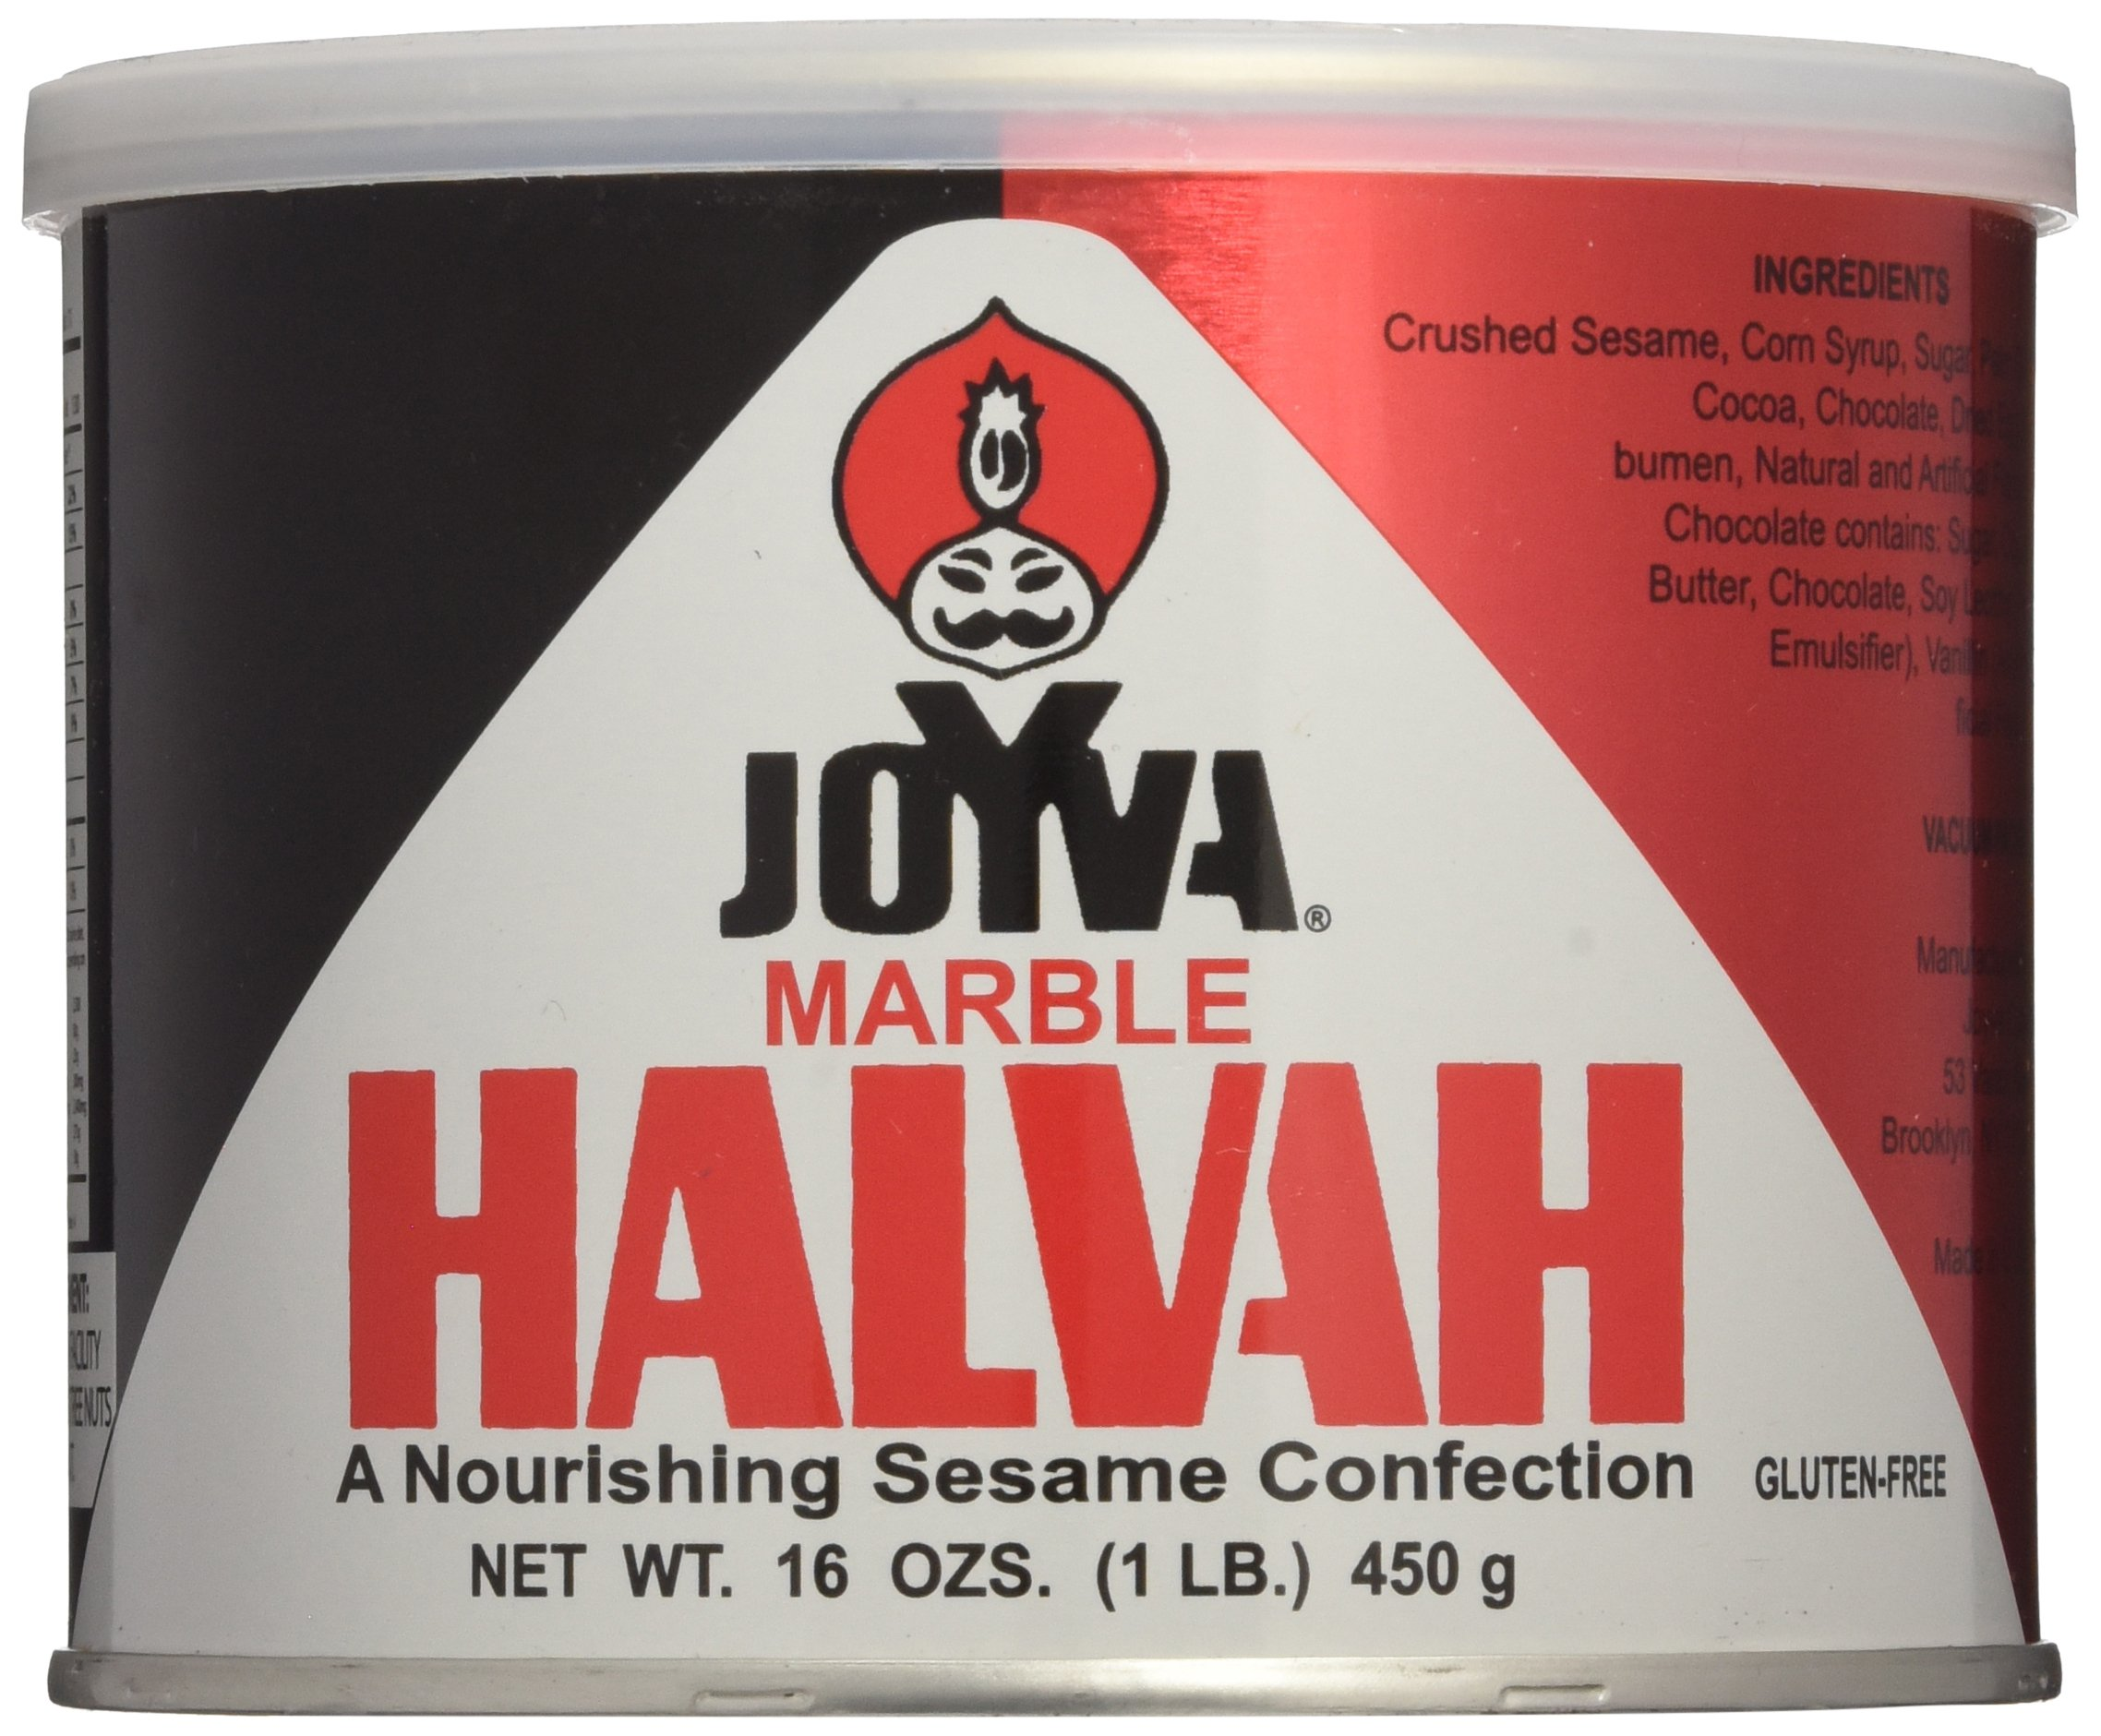 Joyva Marble Halvah, 16-Ounce Cans (Pack of 3)